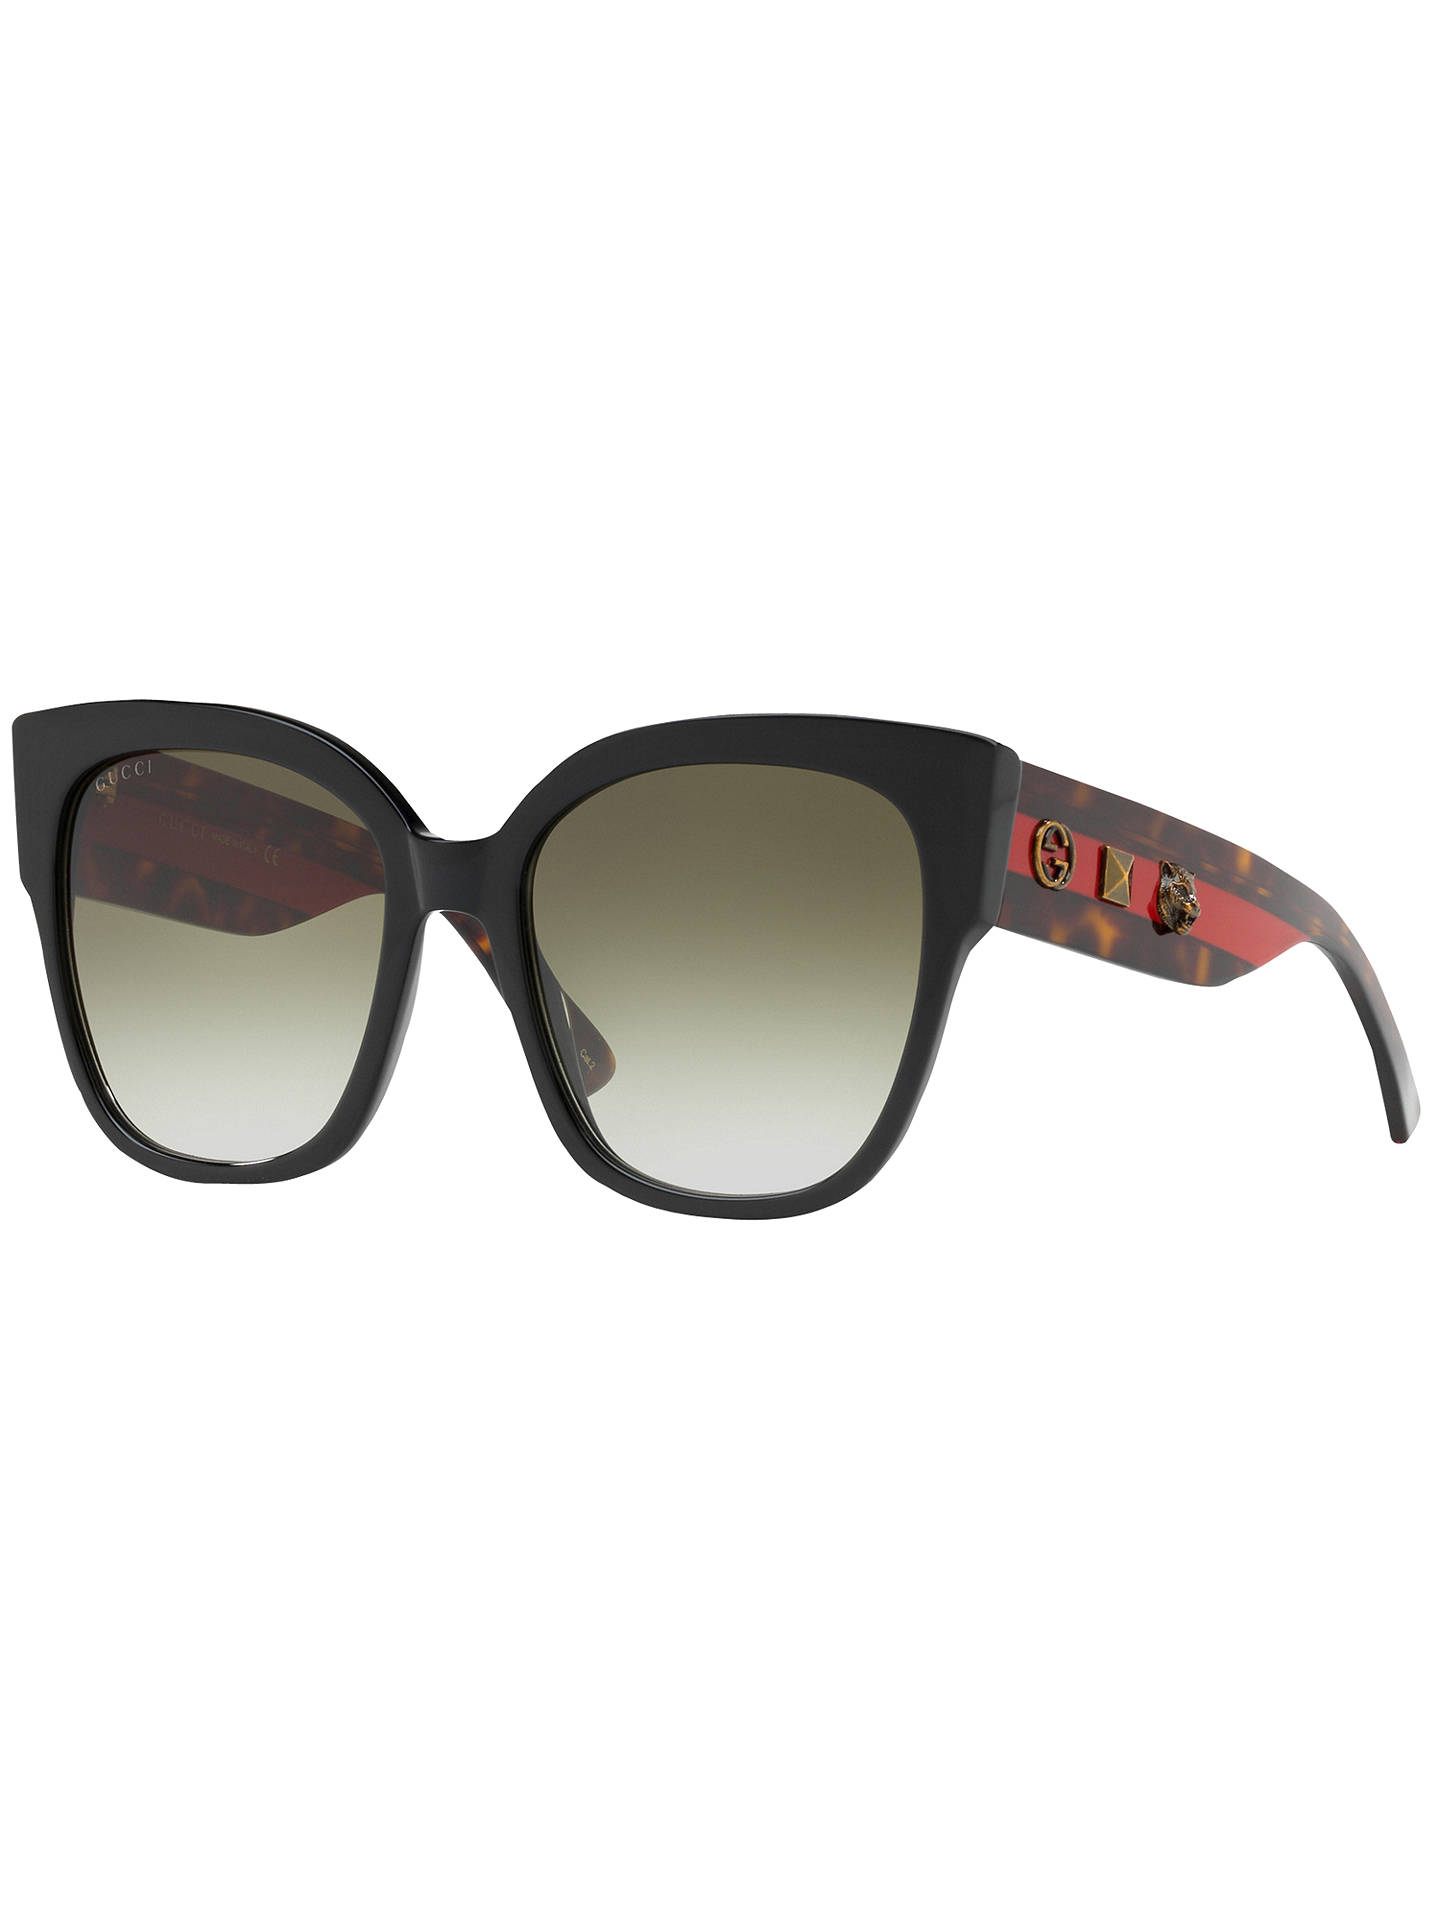 ed8d4ce8d Buy Gucci GG0069S Studded Square Sunglasses, Black/Grey Gradient Online at  johnlewis.com ...